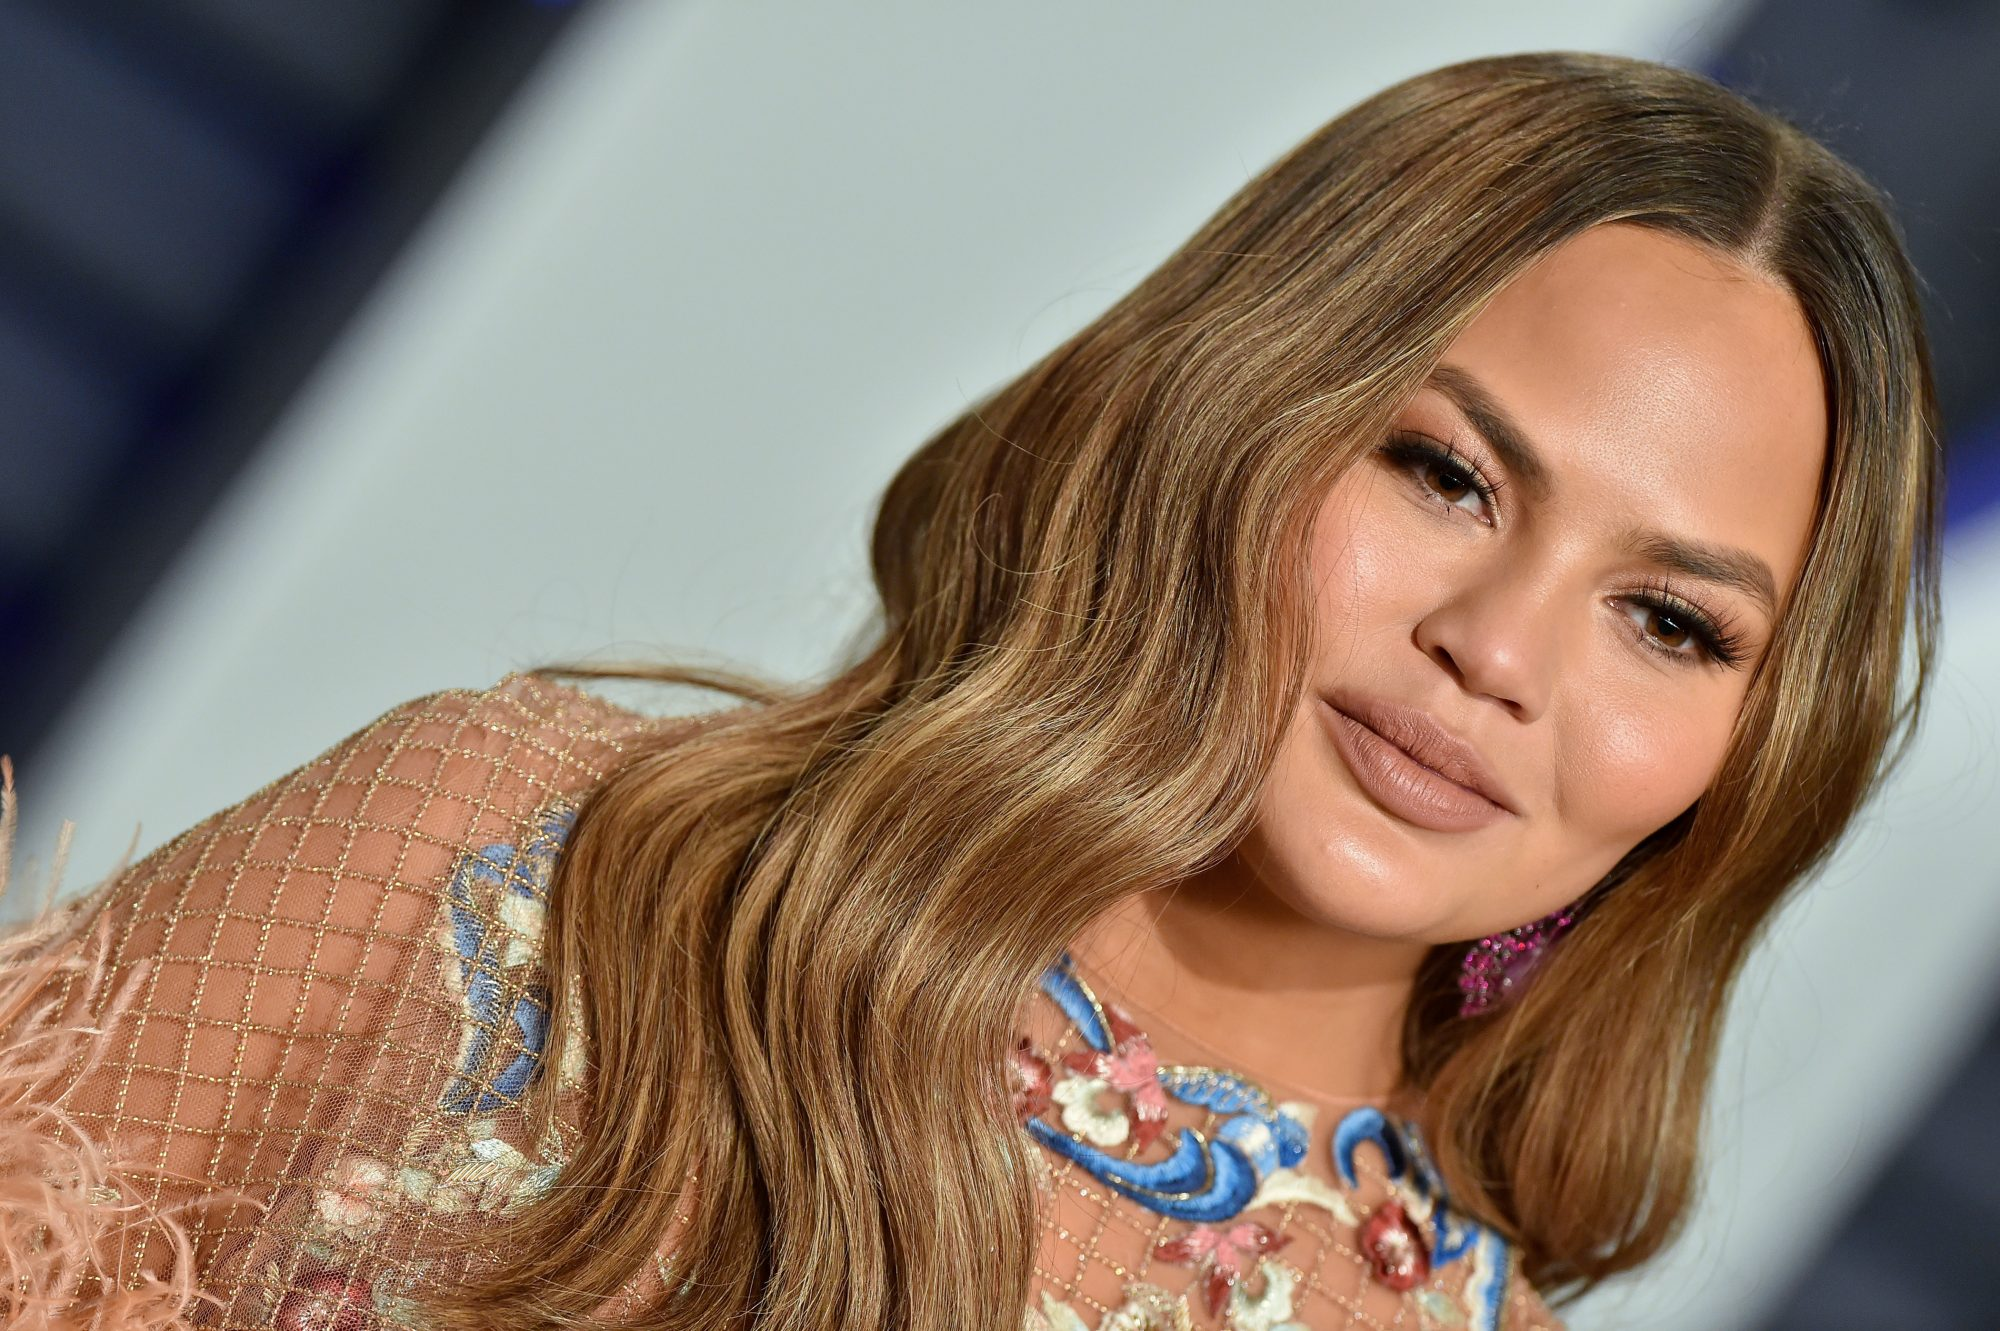 chrissy teigen, breast implant removal surgery